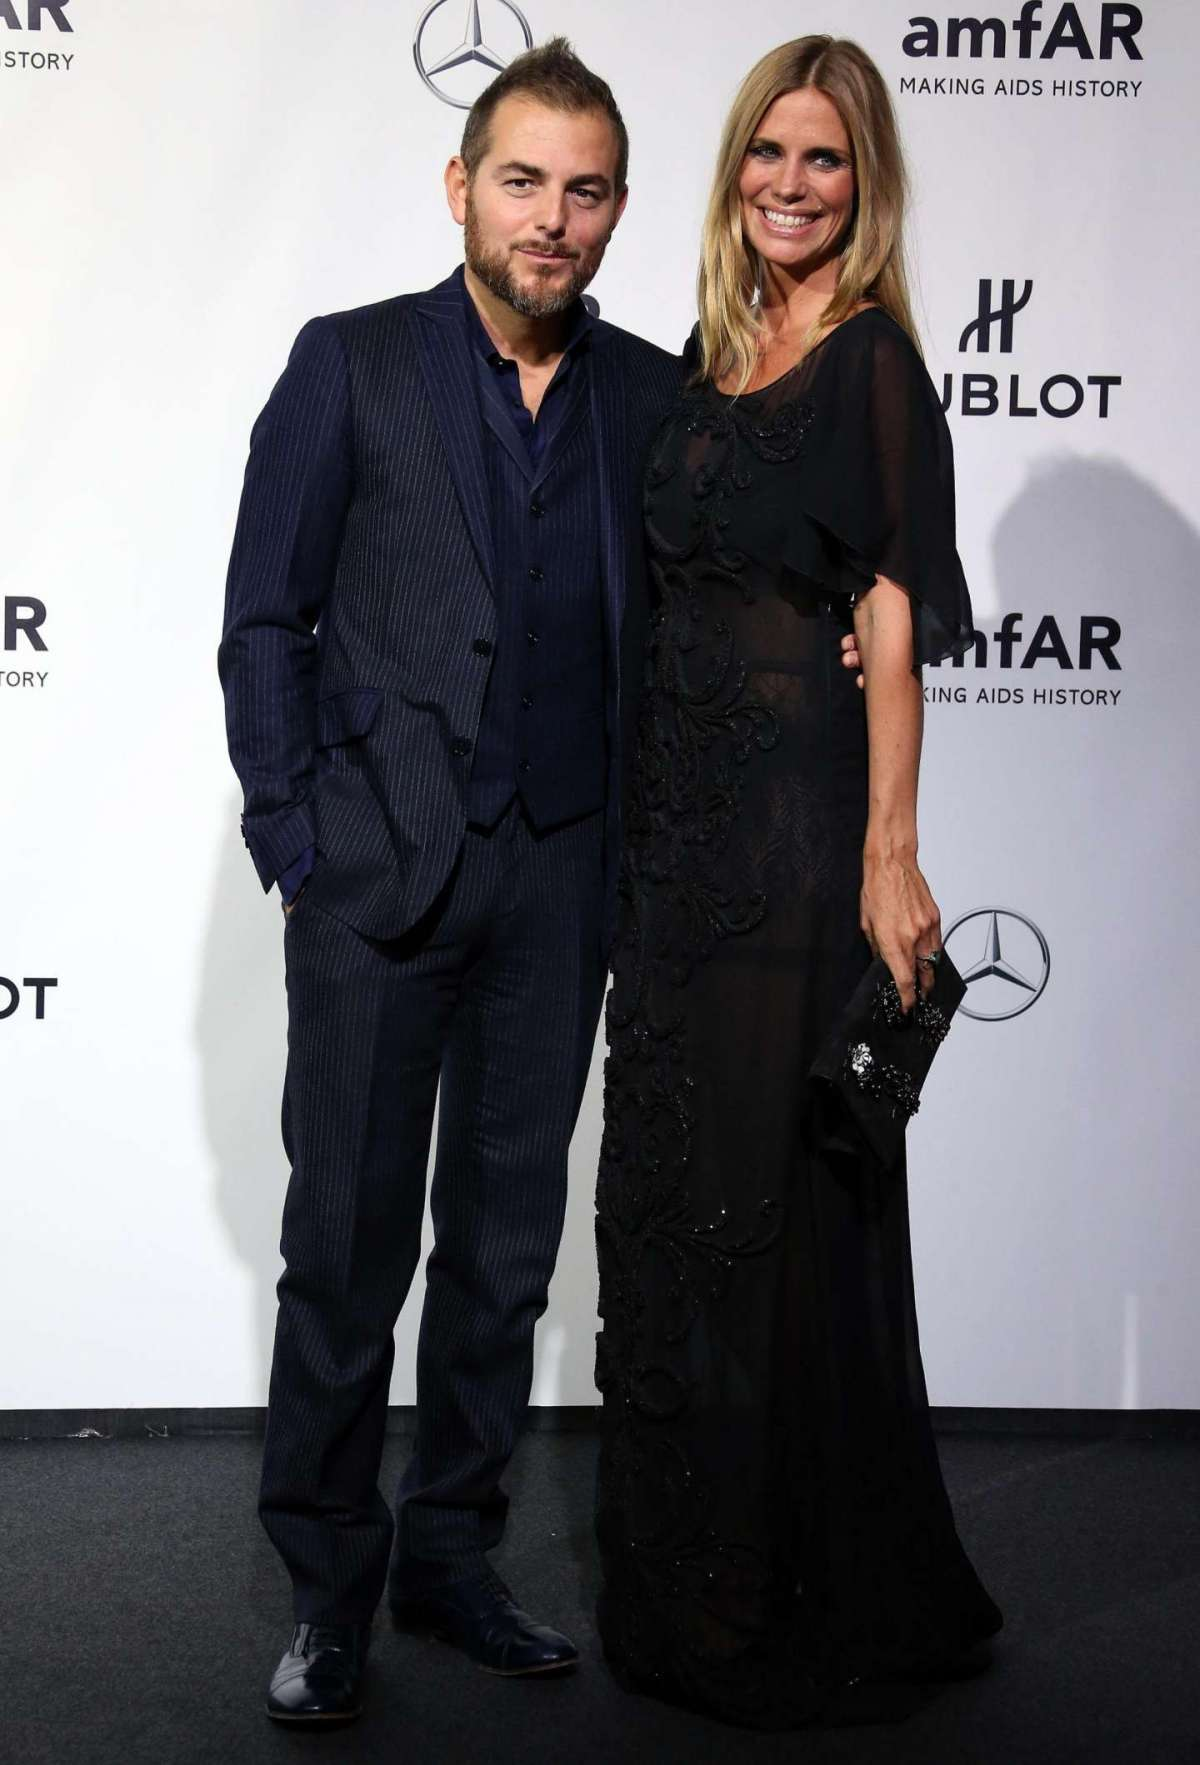 Filippa e Daniele sul red carpet dell'amfar